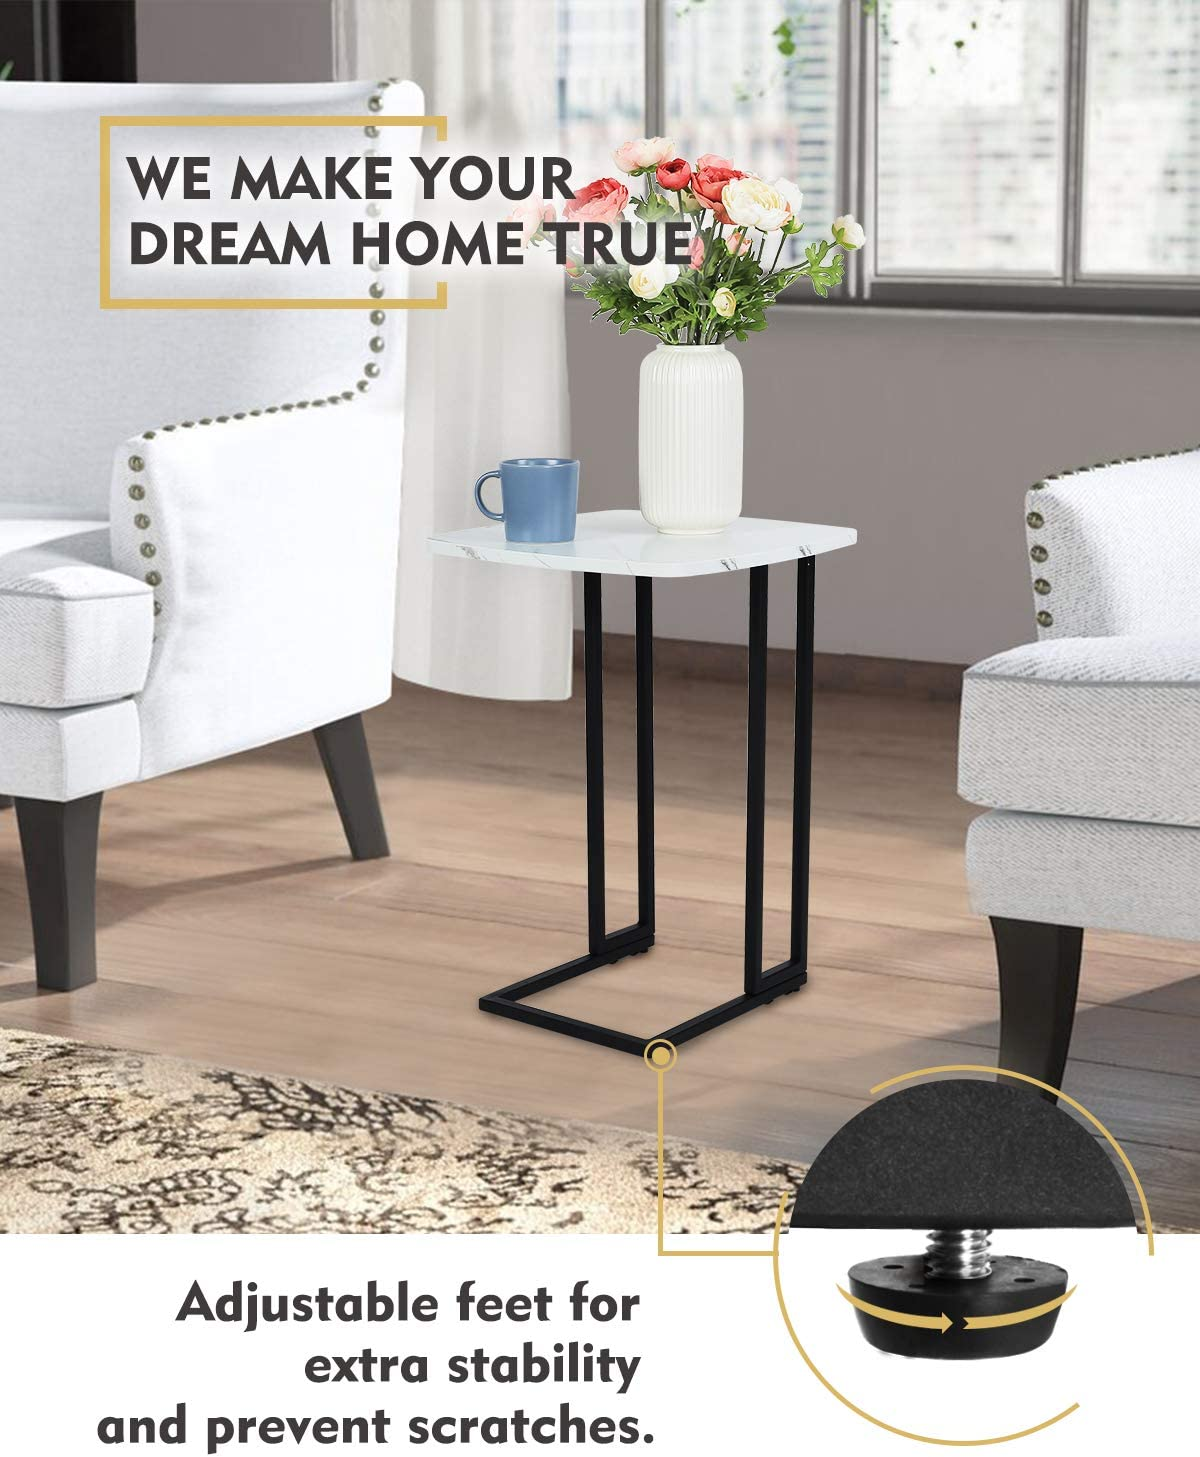 Moncot Side Table, Mobile Sofa End Table, Accent C Table,TV Tray with Detachable Wheels,Slides into Couch for Small Space,Living Room, Bedroom, MDF Table Top with White Marble Texture, ET220A-WH: Kitchen & Dining